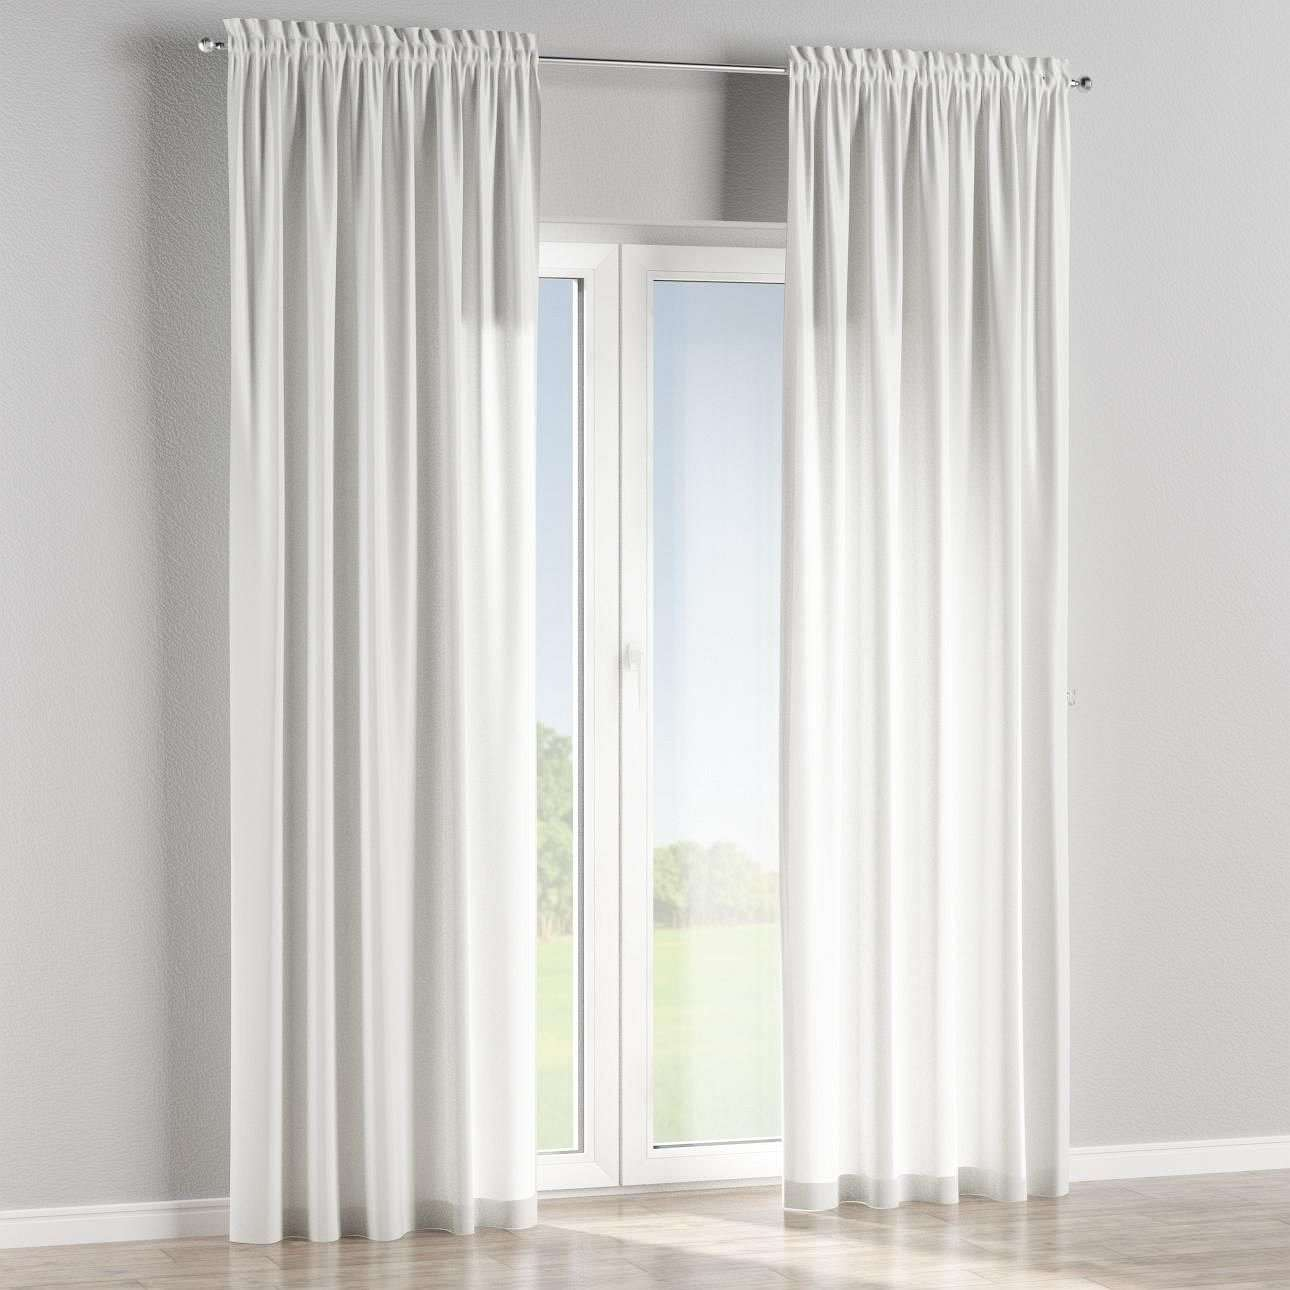 Slot and frill lined curtains in collection Rustica, fabric: 140-31